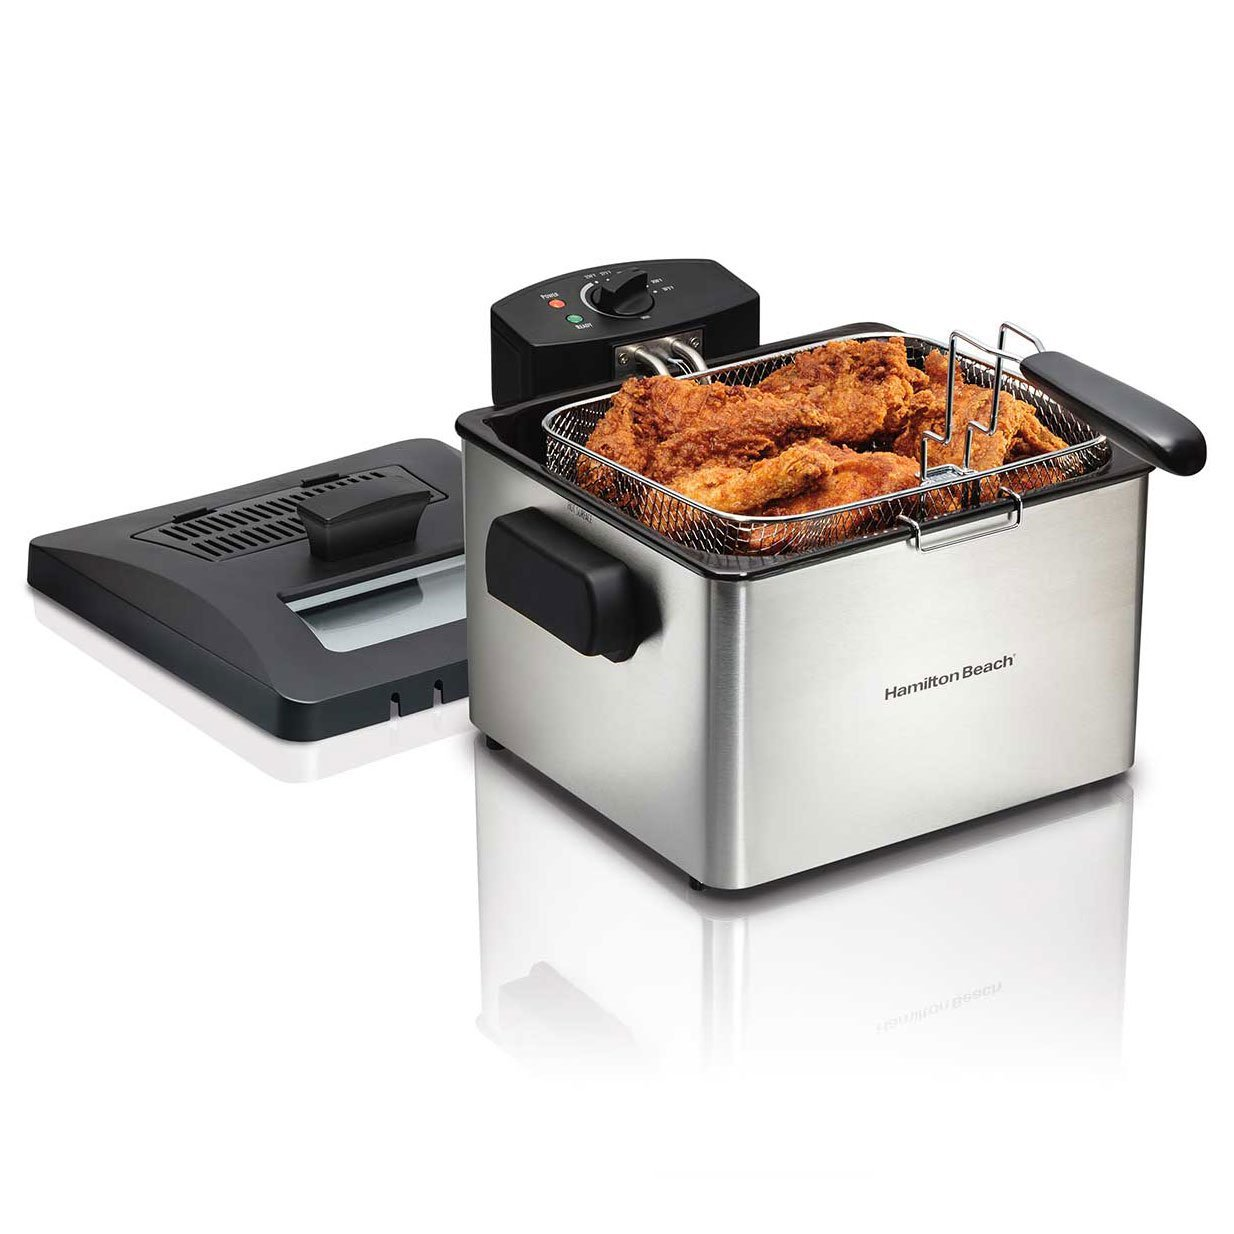 Hamilton Beach 35042 Professional Home 21 Cup 1 Basket Electric Deep Fat Fryer